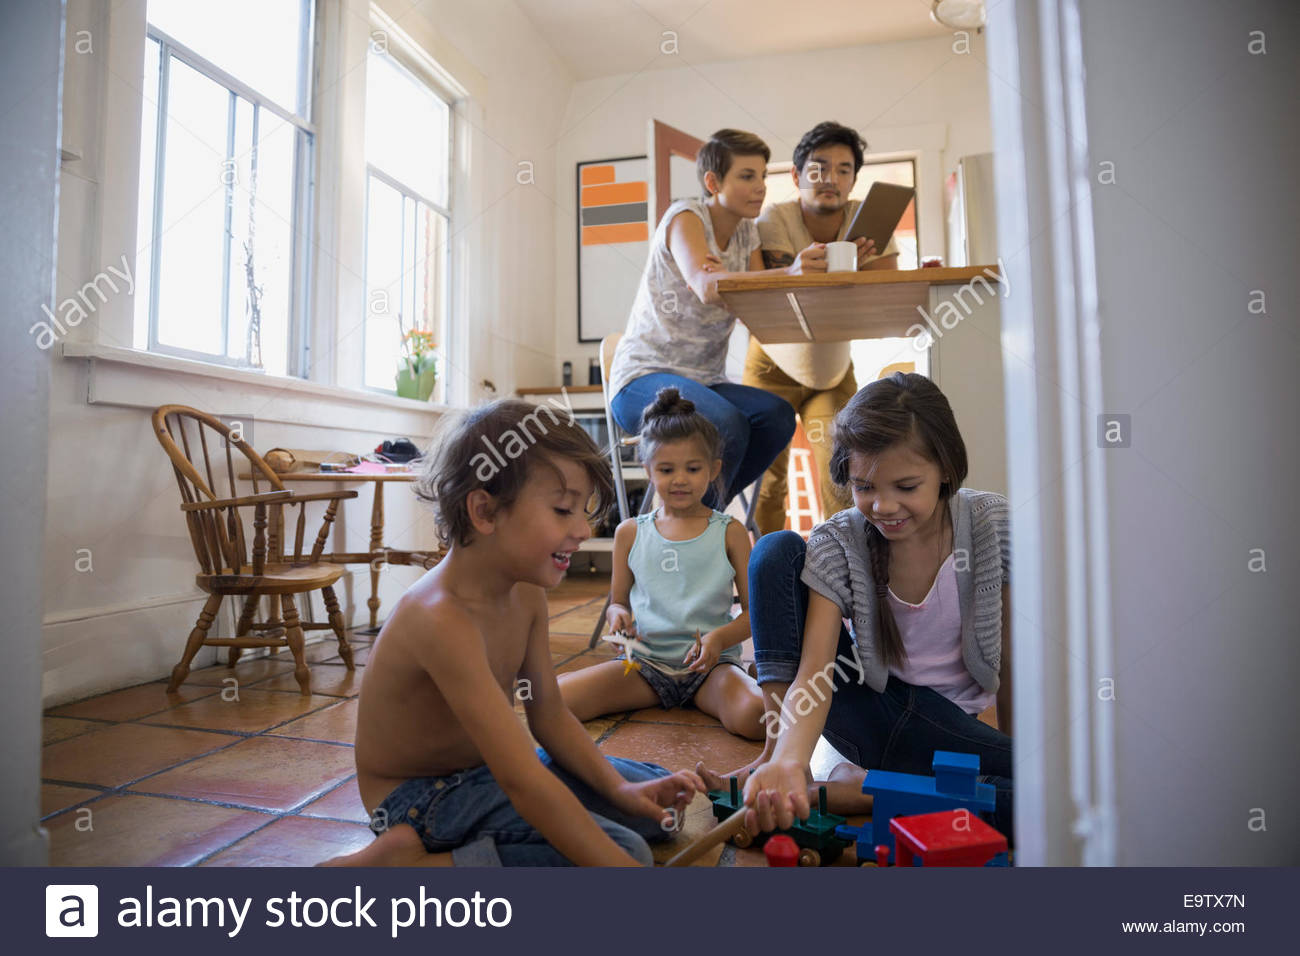 Children playing on kitchen floor Stock Photo